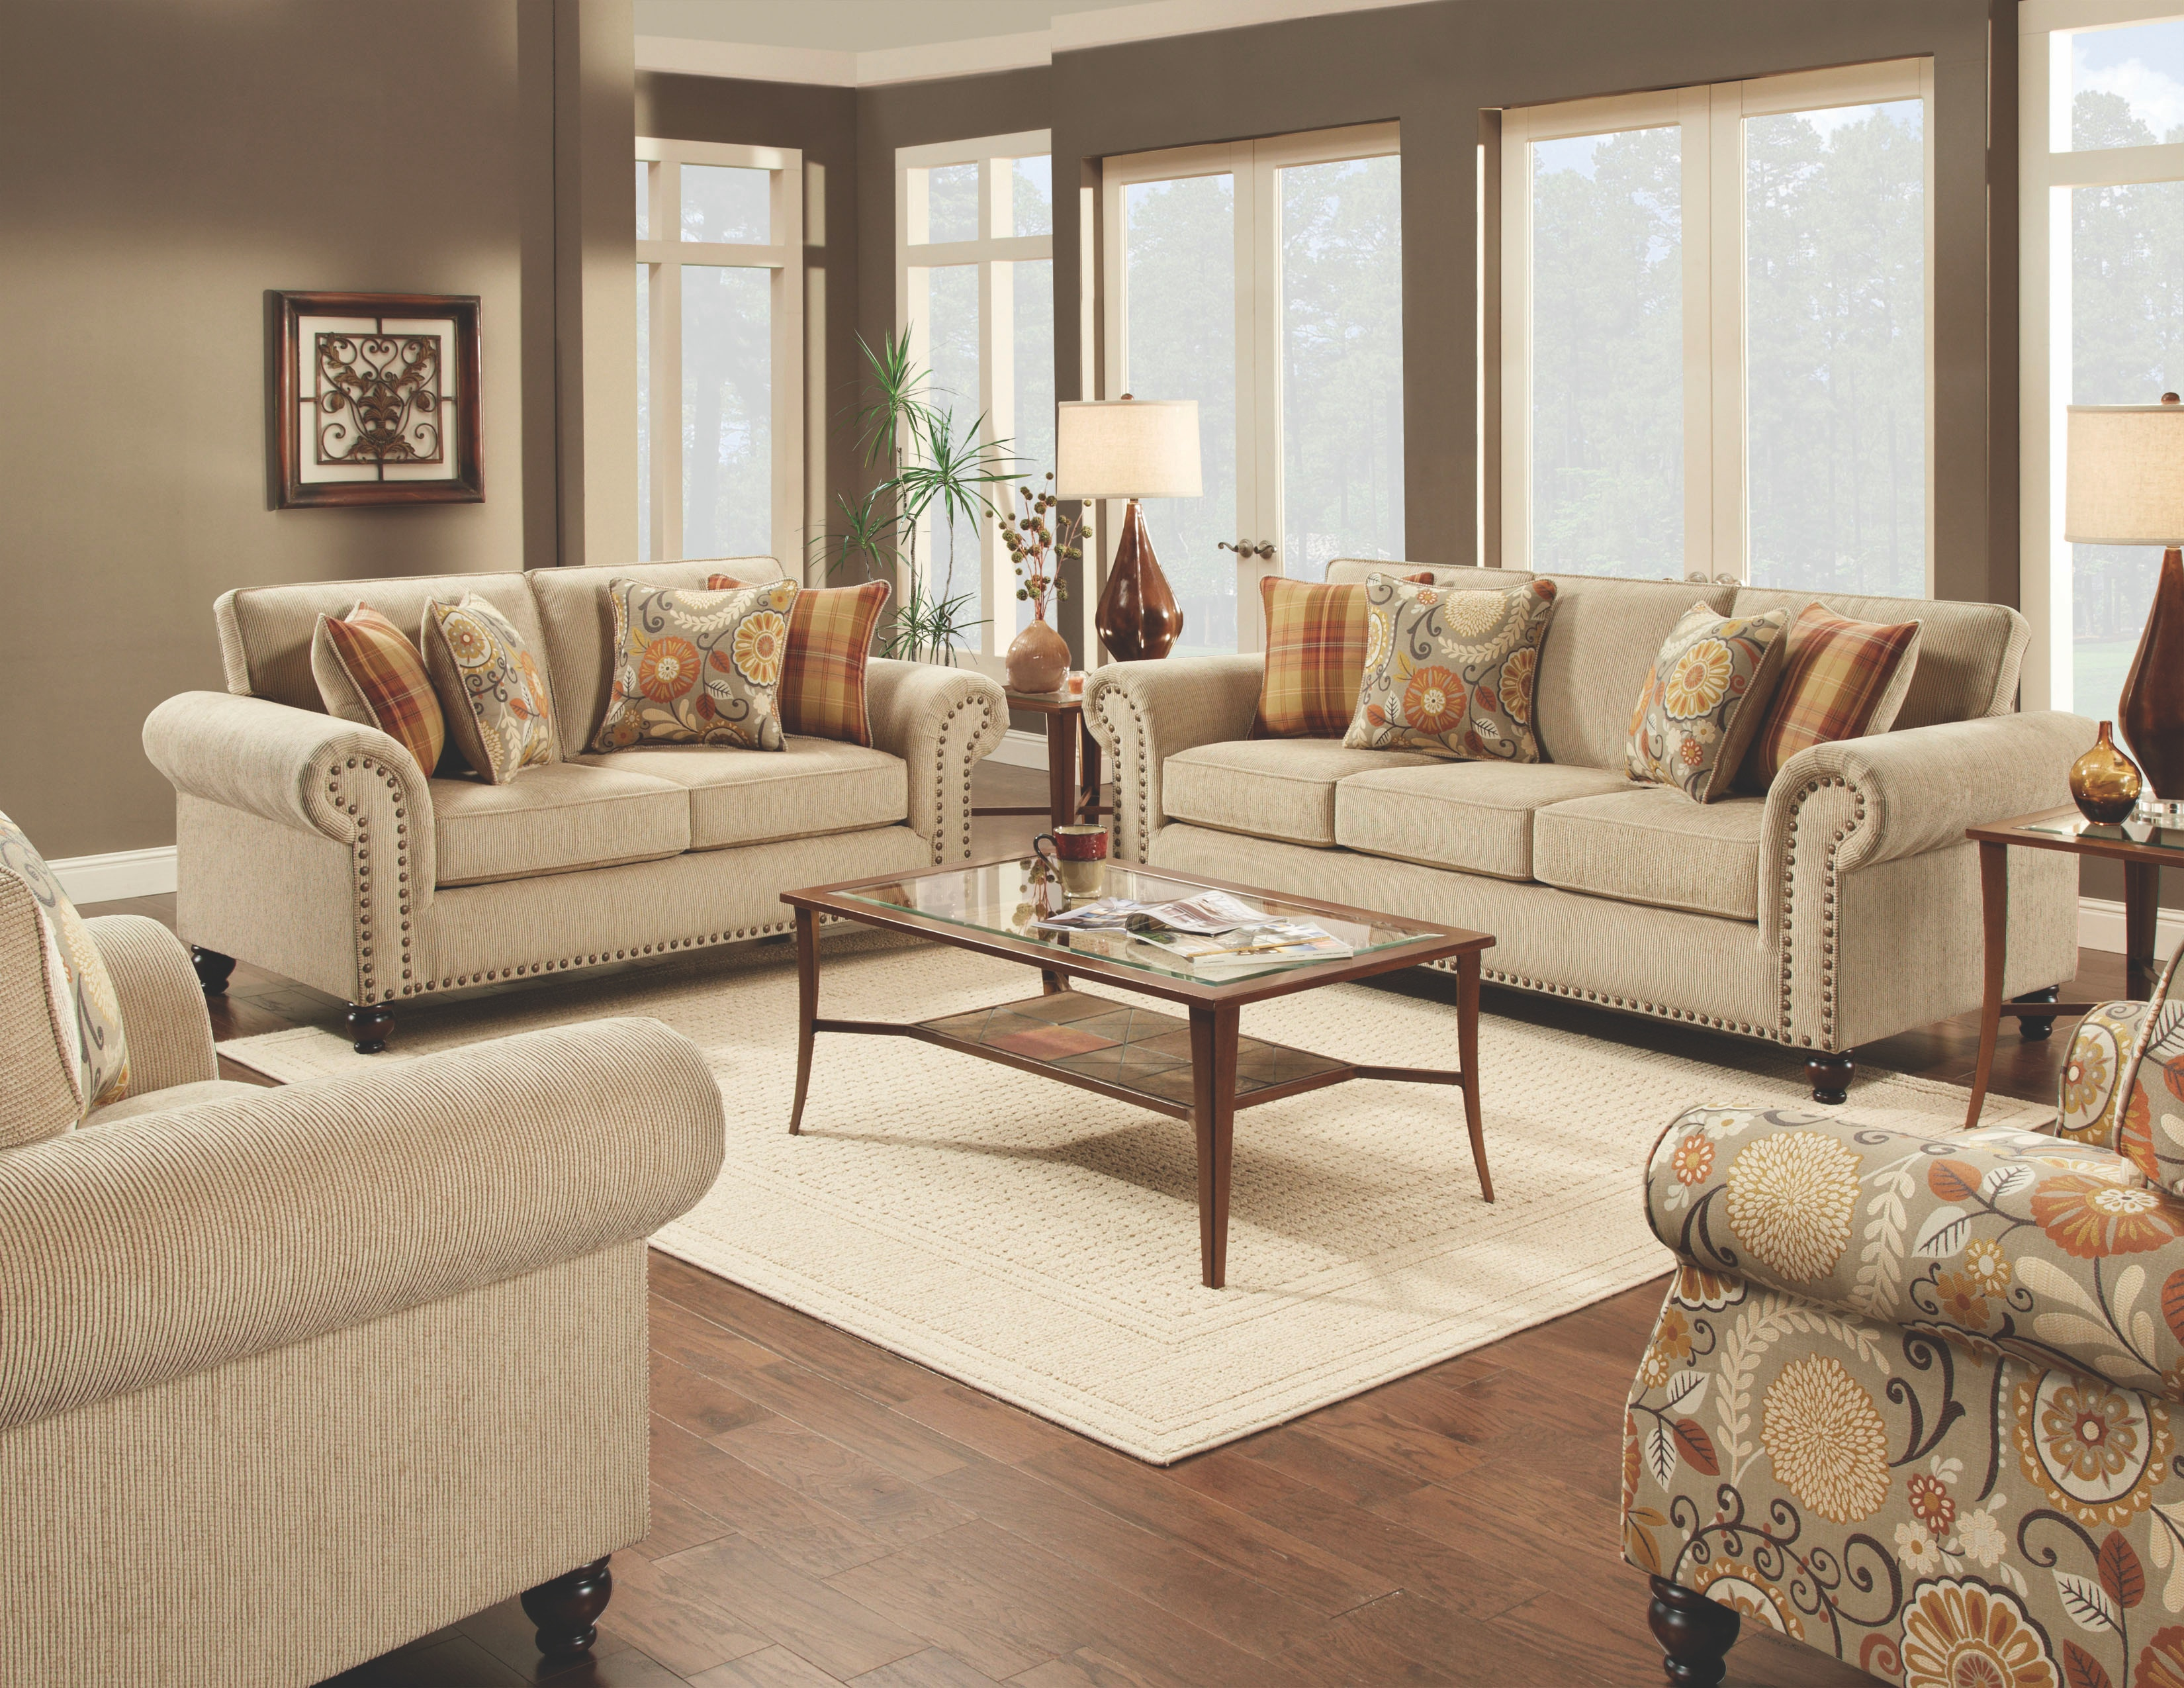 electra room furnishings item love contemporary seat living dual collections and boulevard home storage holders loveseat classic new reclining console lms with cup recliner